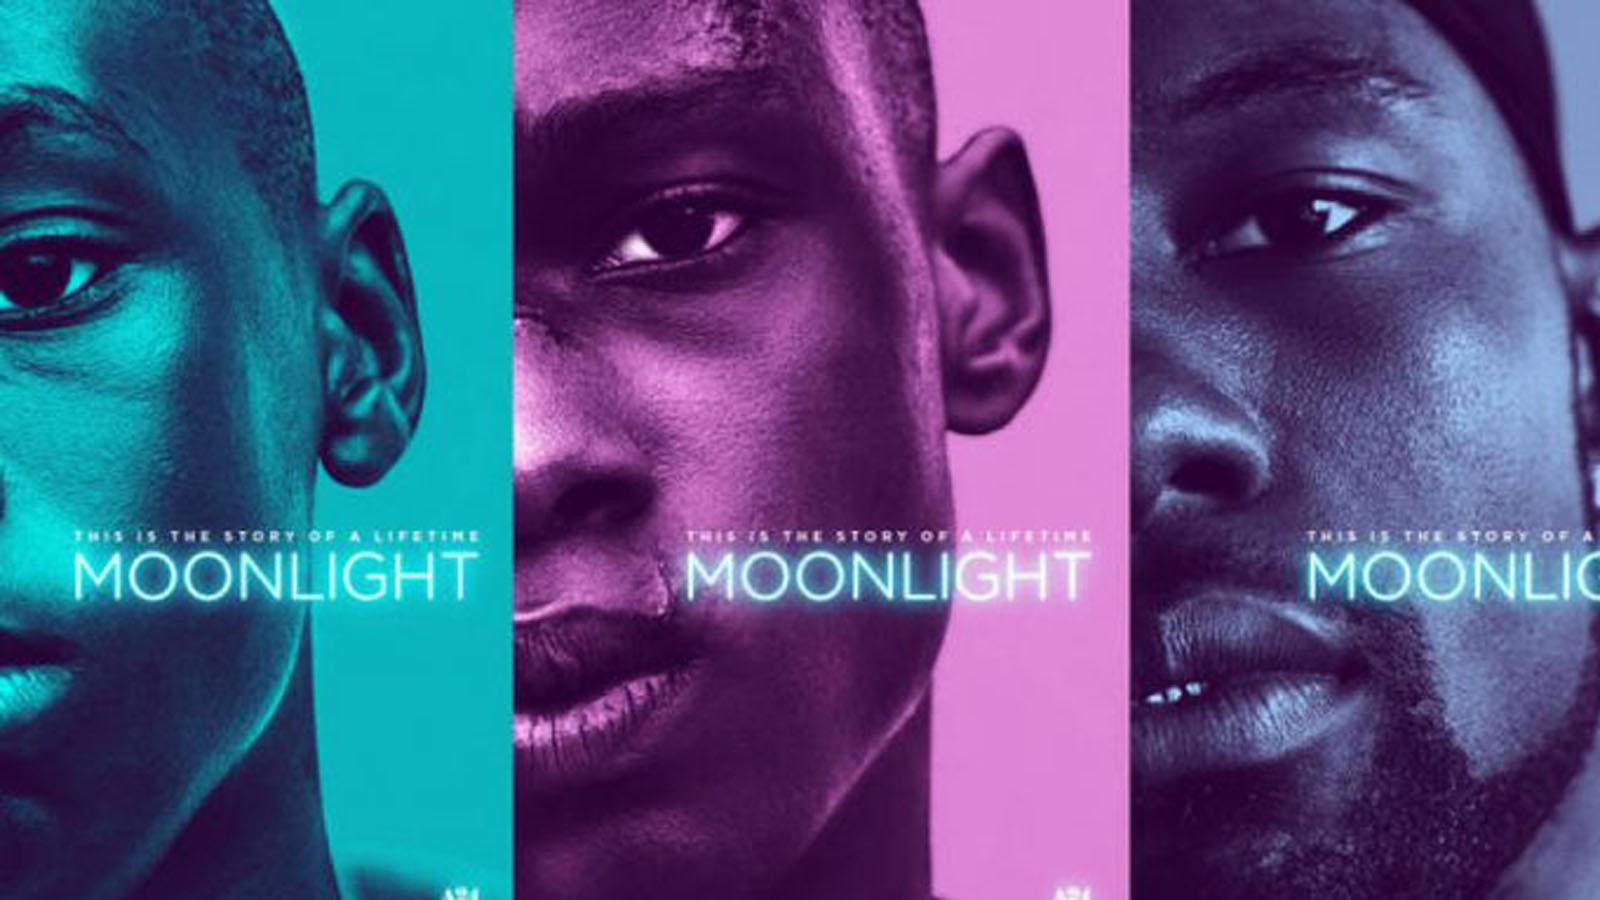 Moonlight, a mostly black directed and acted movie, was able to defeat the odds by winning best picture and focusing on sexuality and race.